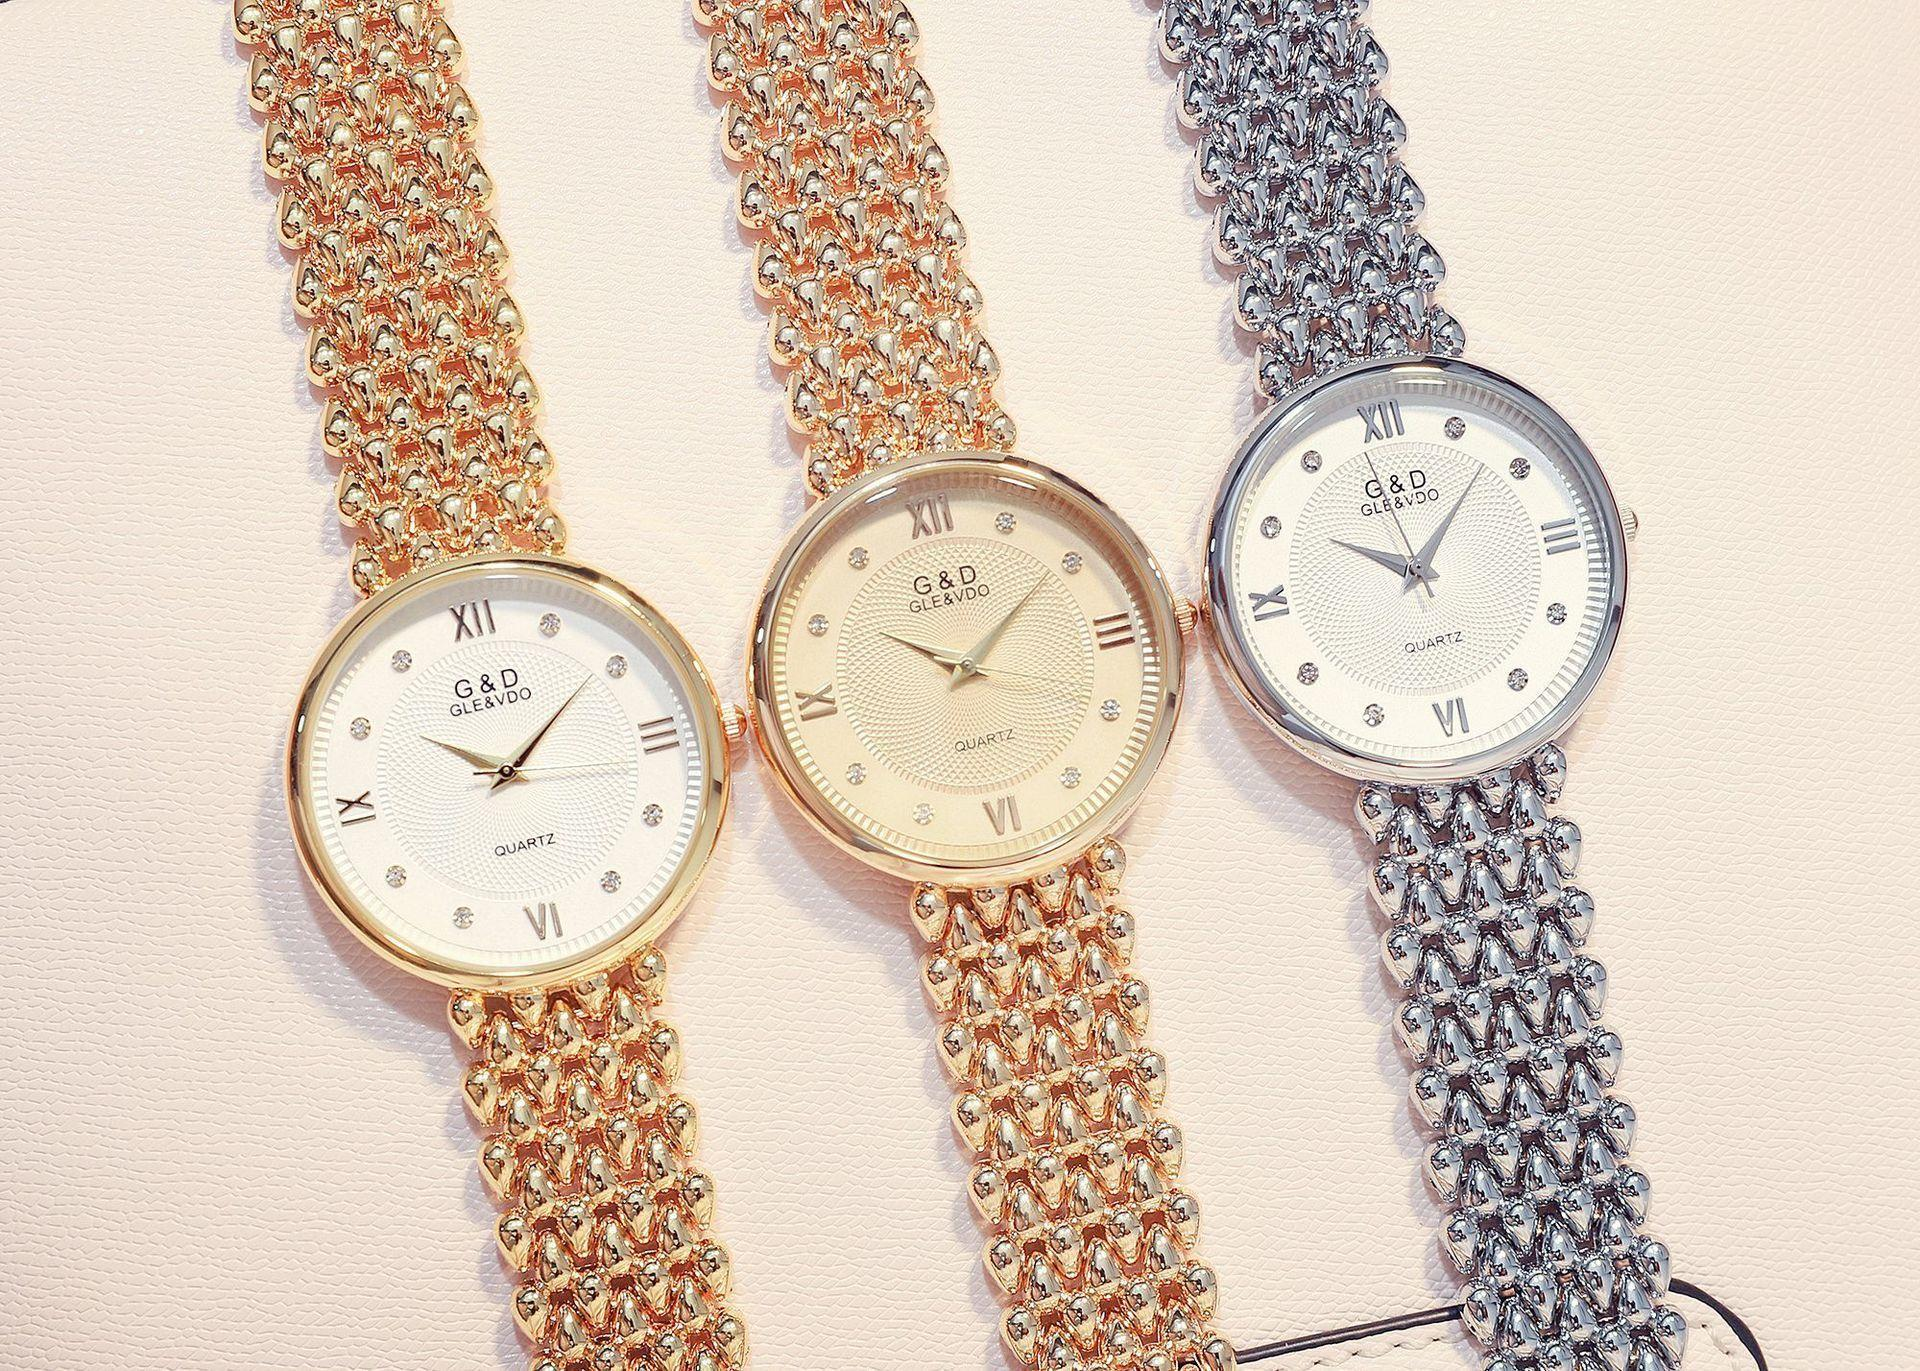 Bracelet Surface Quartz Watch Diamond G & D Men And Women Steel Sheet Bring Surface Disc Watches